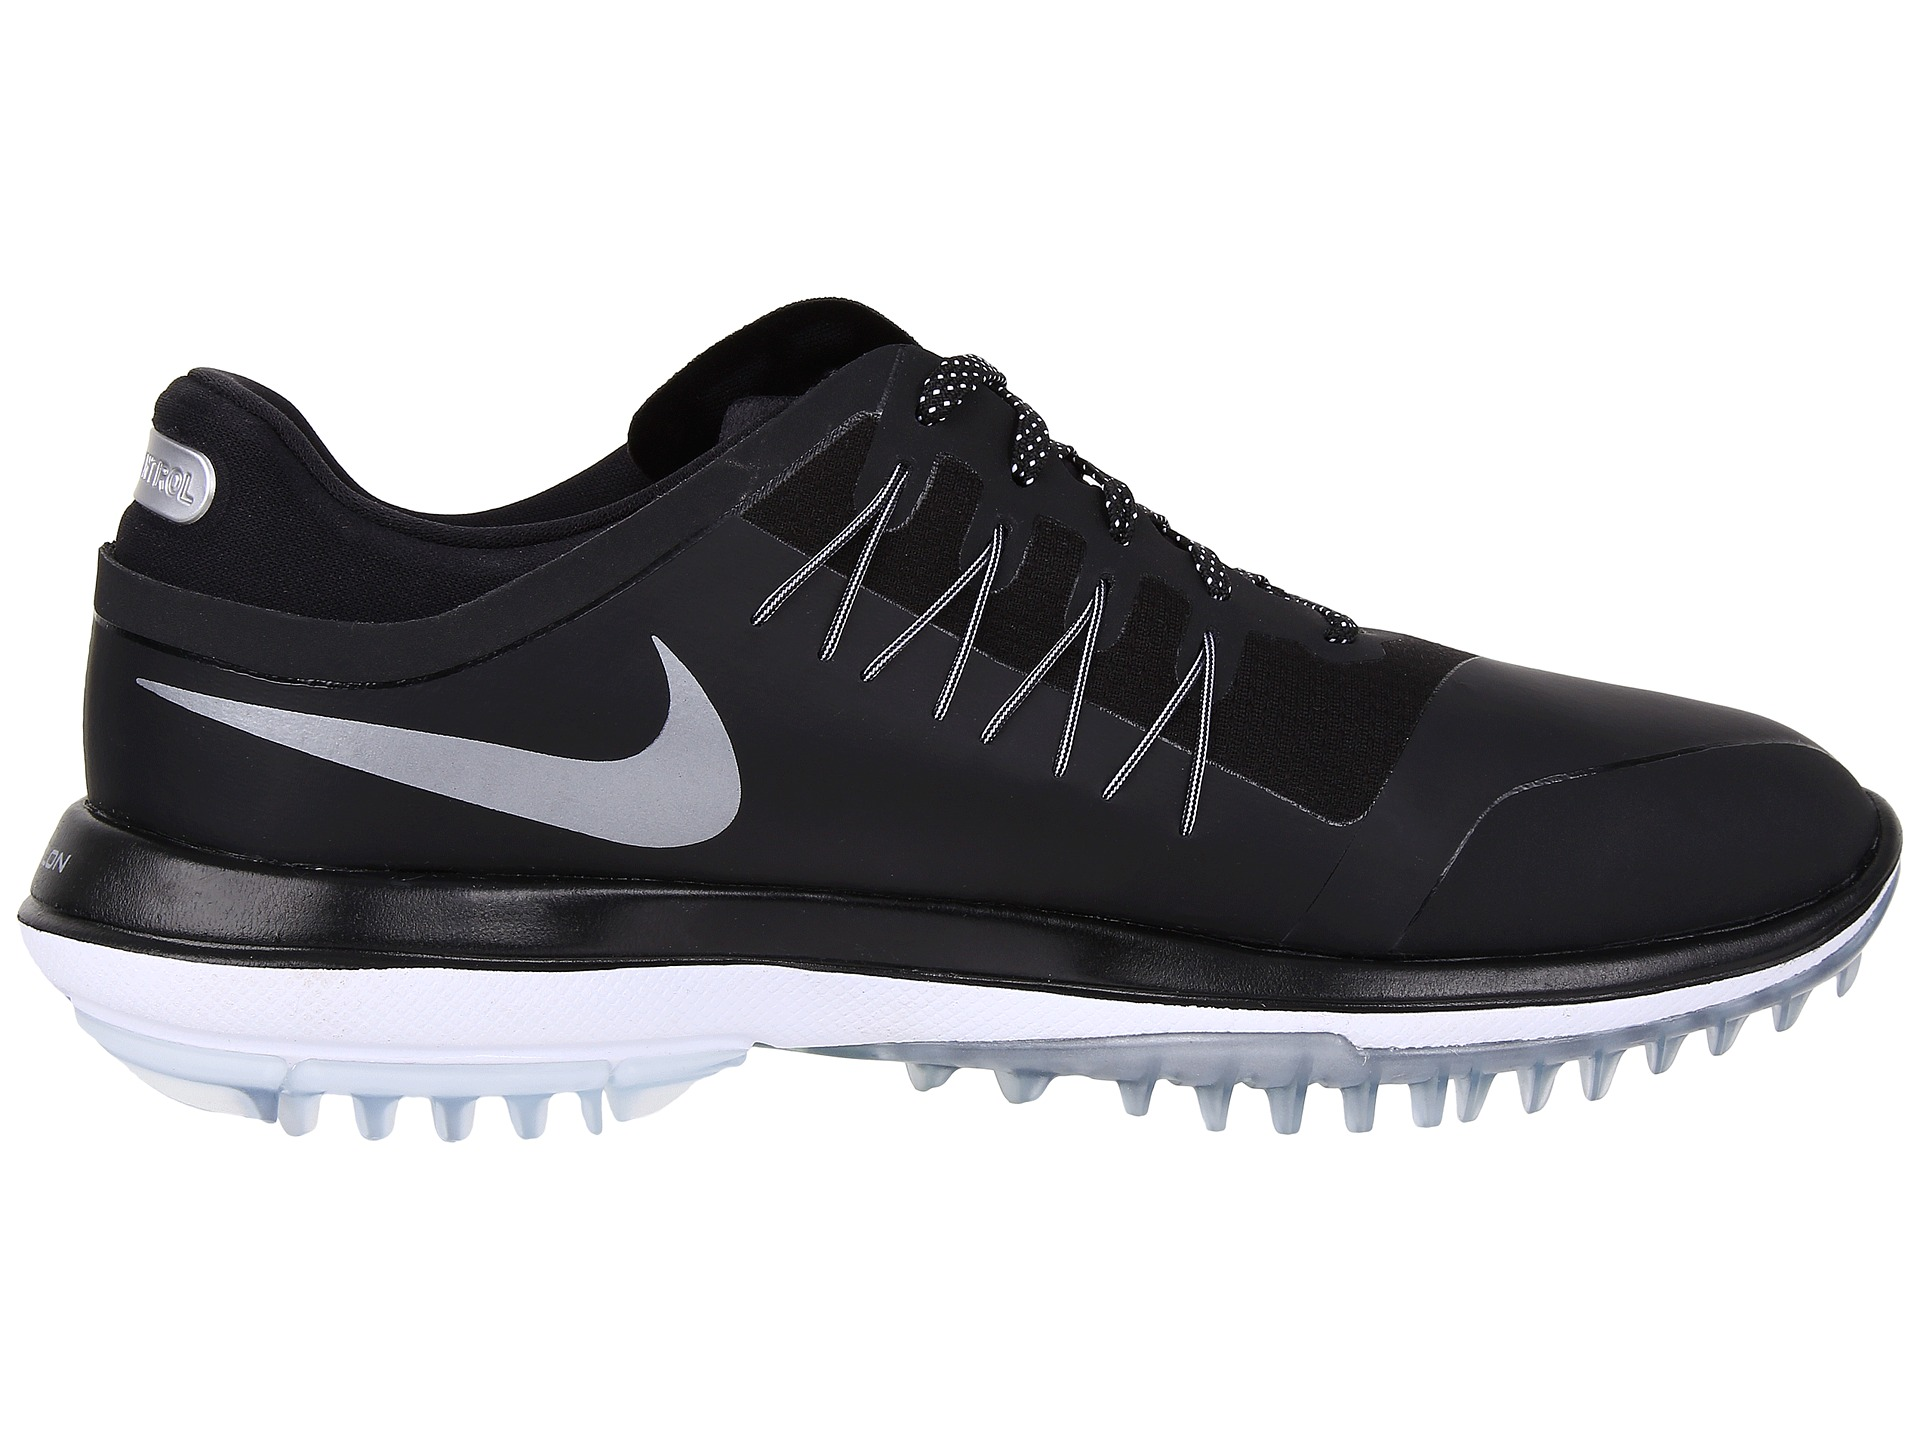 Buy The Nike Men S Lunar Control Vapor Golf Shoes Here